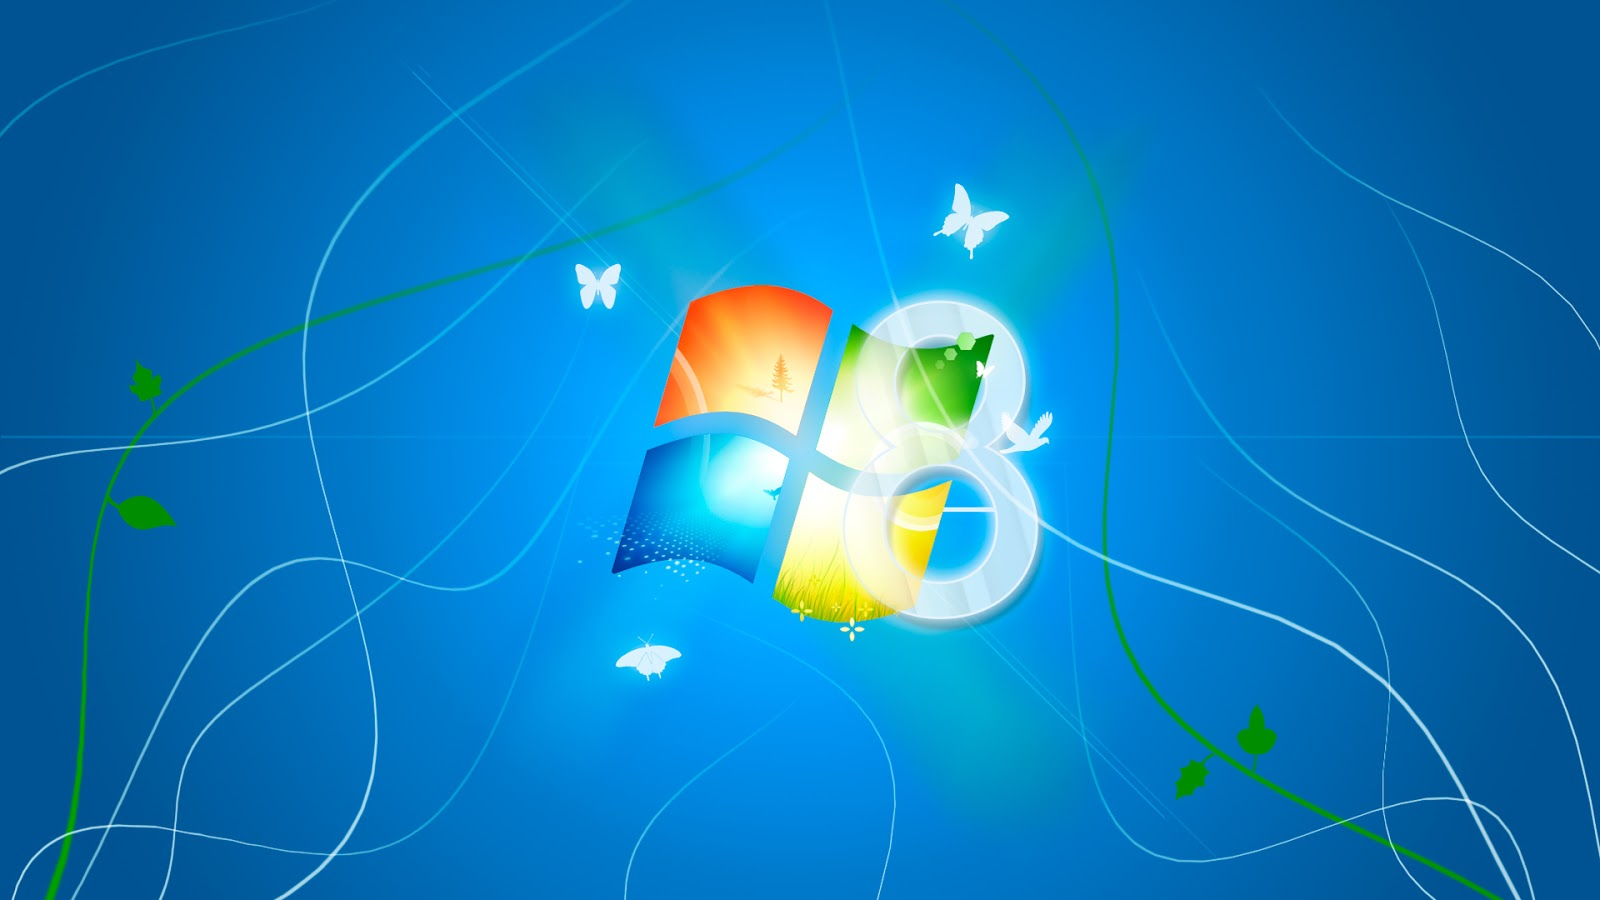 Windows 8 HD Wallpaper Light